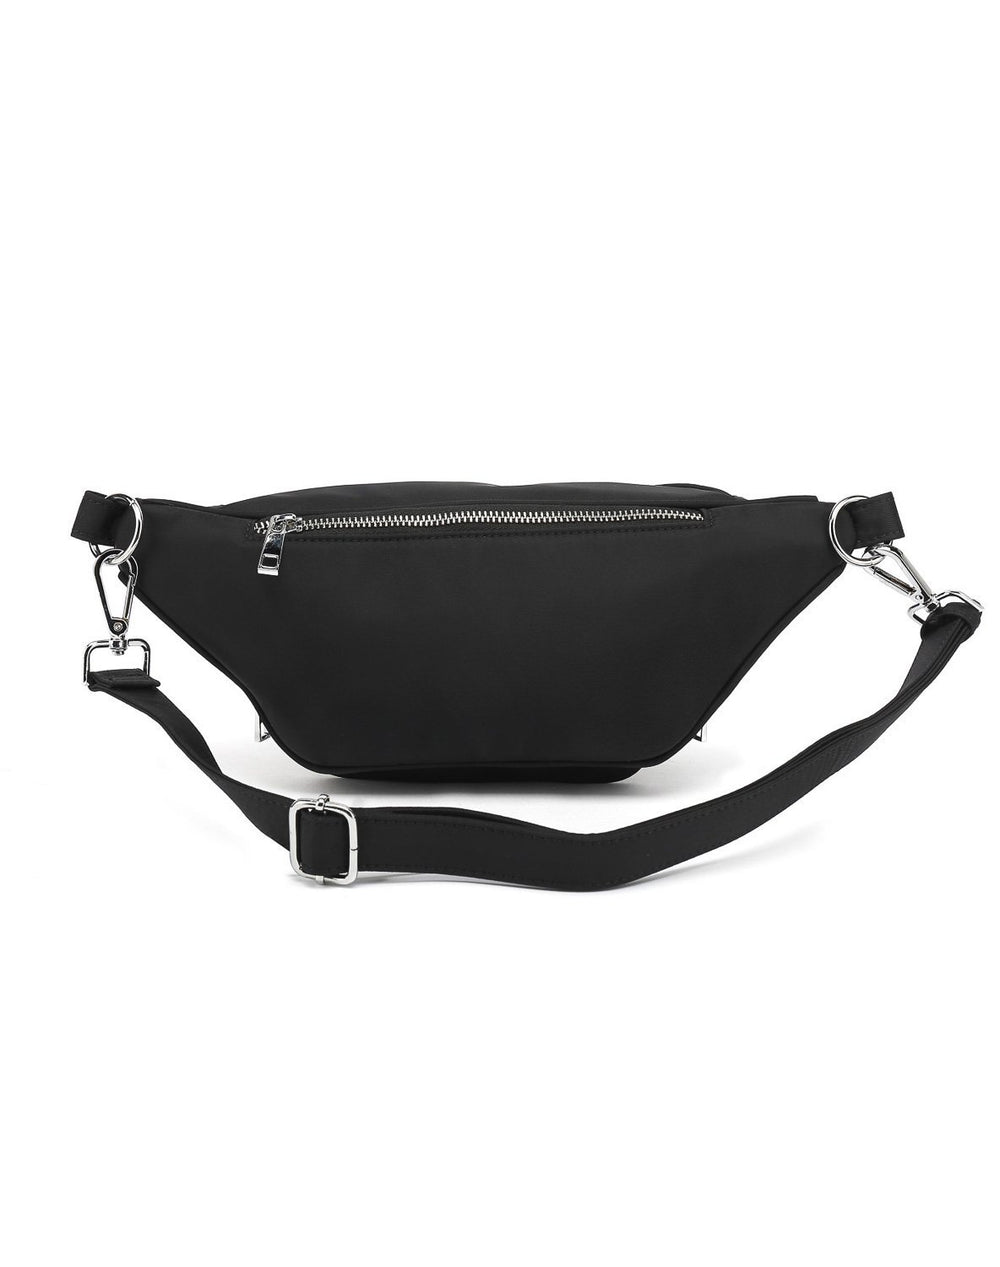 Noella Camila crossover bag black nylon - Online-Mode